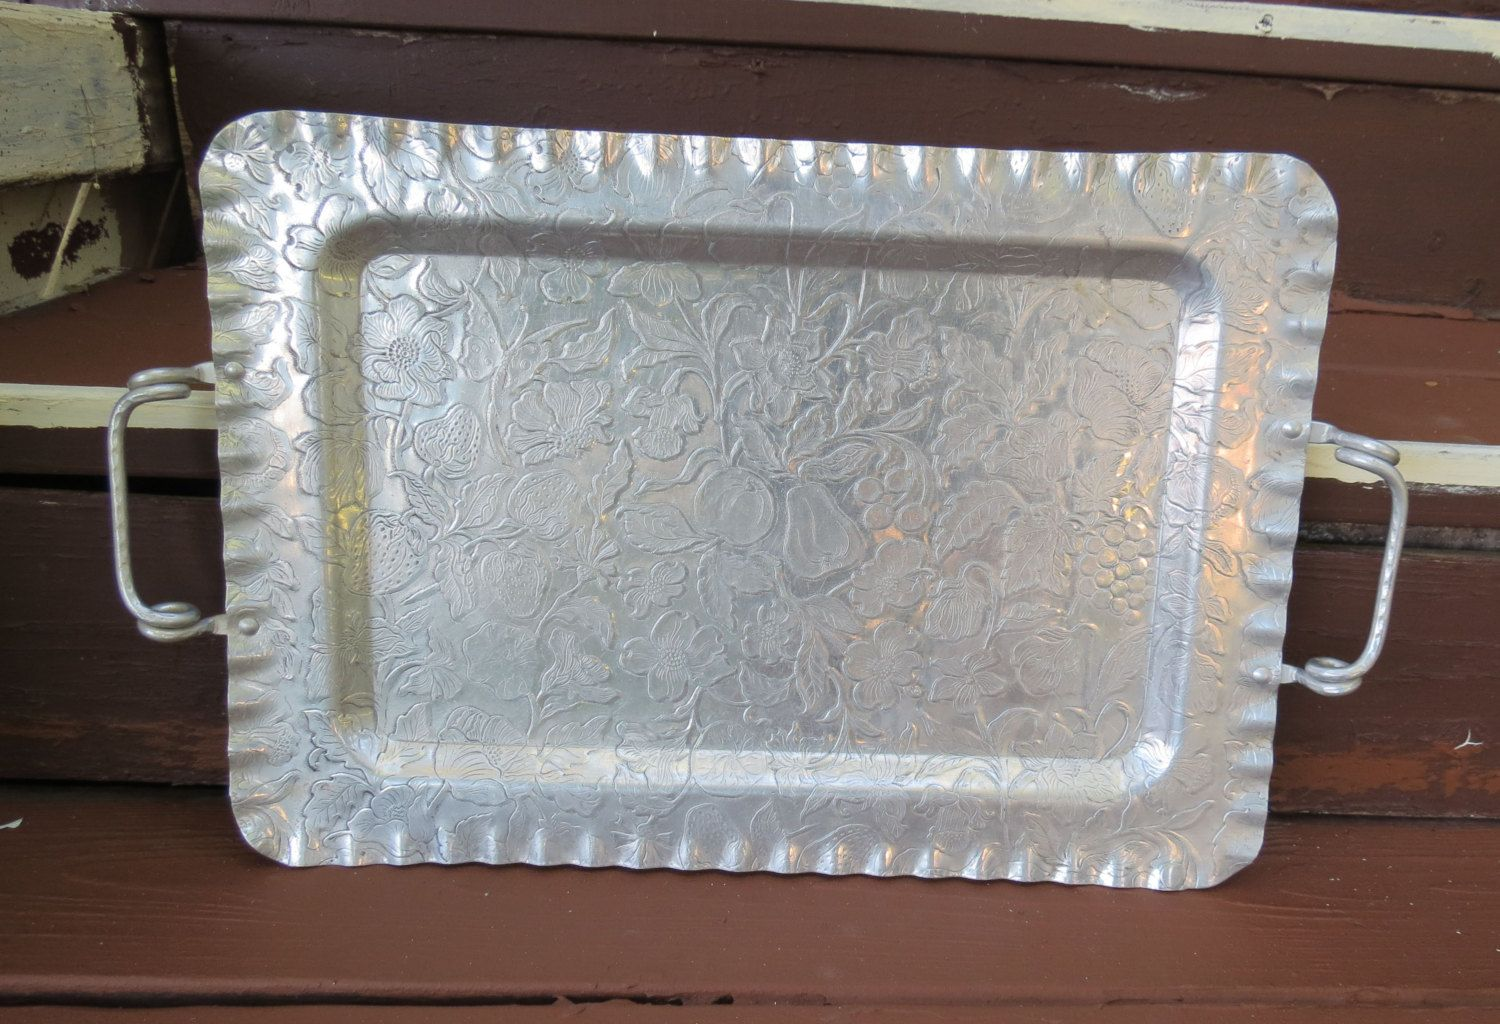 Vintage Large Aluminum Serving Tray Hand Finished Flowers Flora Fruit Kitchenware Kitchen Ware #kitchenware